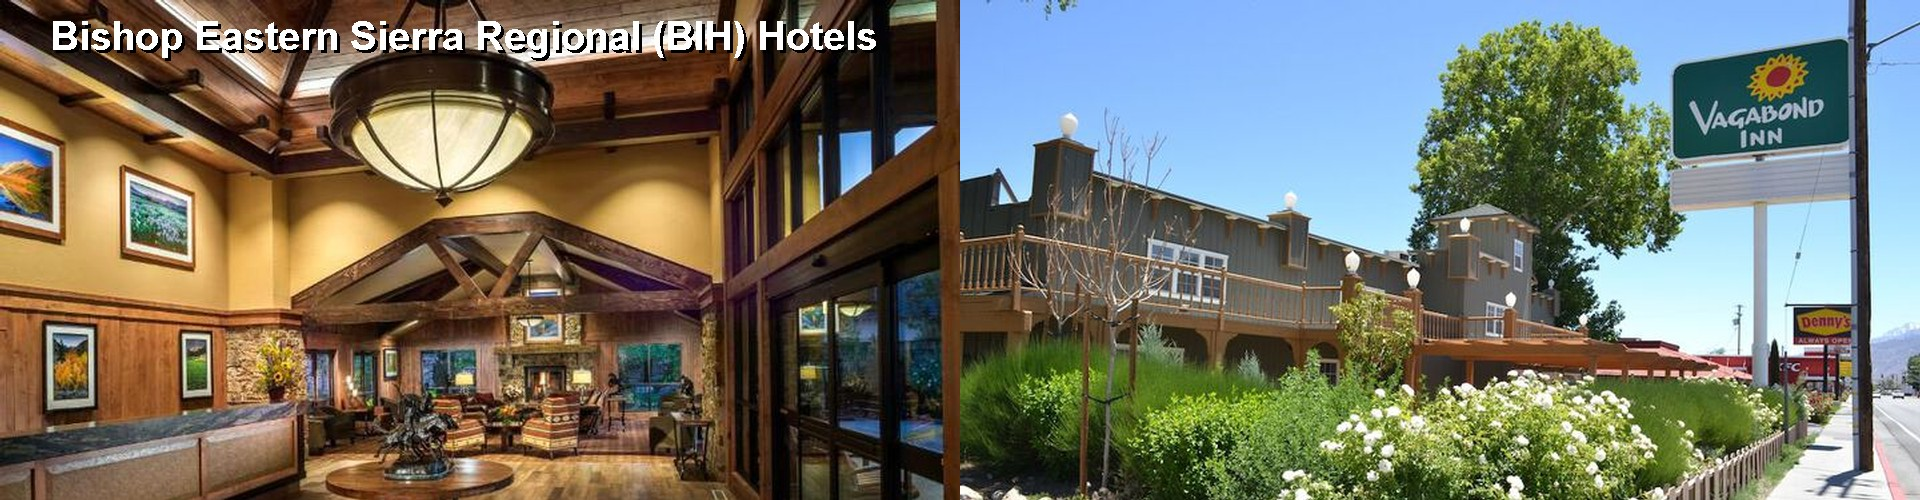 5 Best Hotels near Bishop Eastern Sierra Regional (BIH)